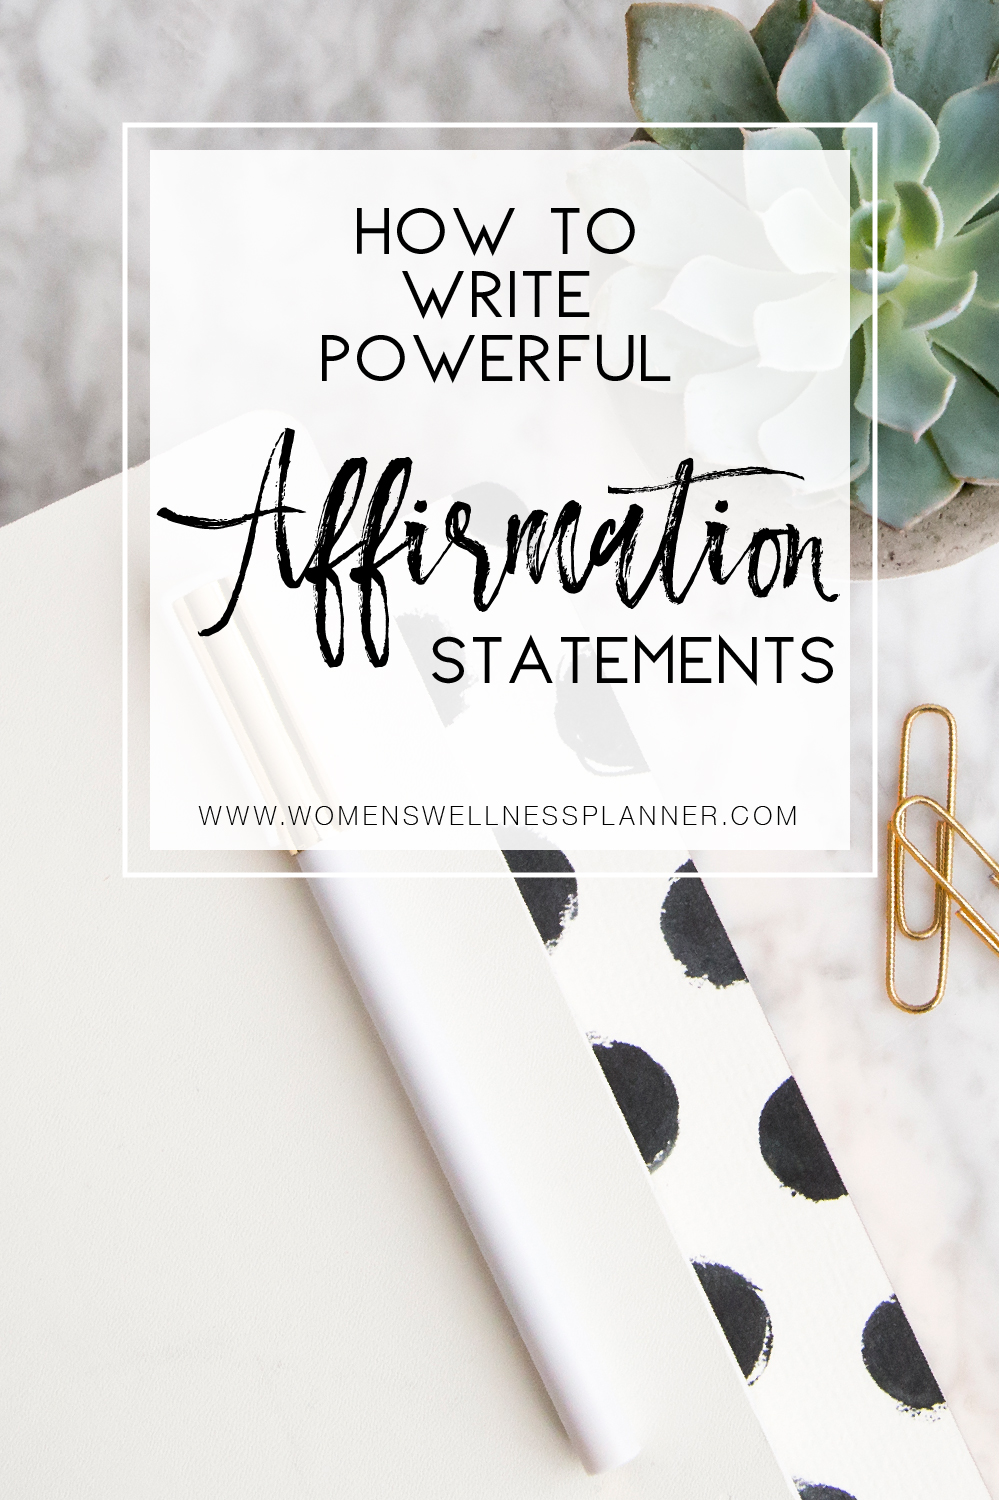 How to write powerful affirmation statements womens wellness planner how to write powerful affirmation statements womens wellness planner blog altavistaventures Gallery